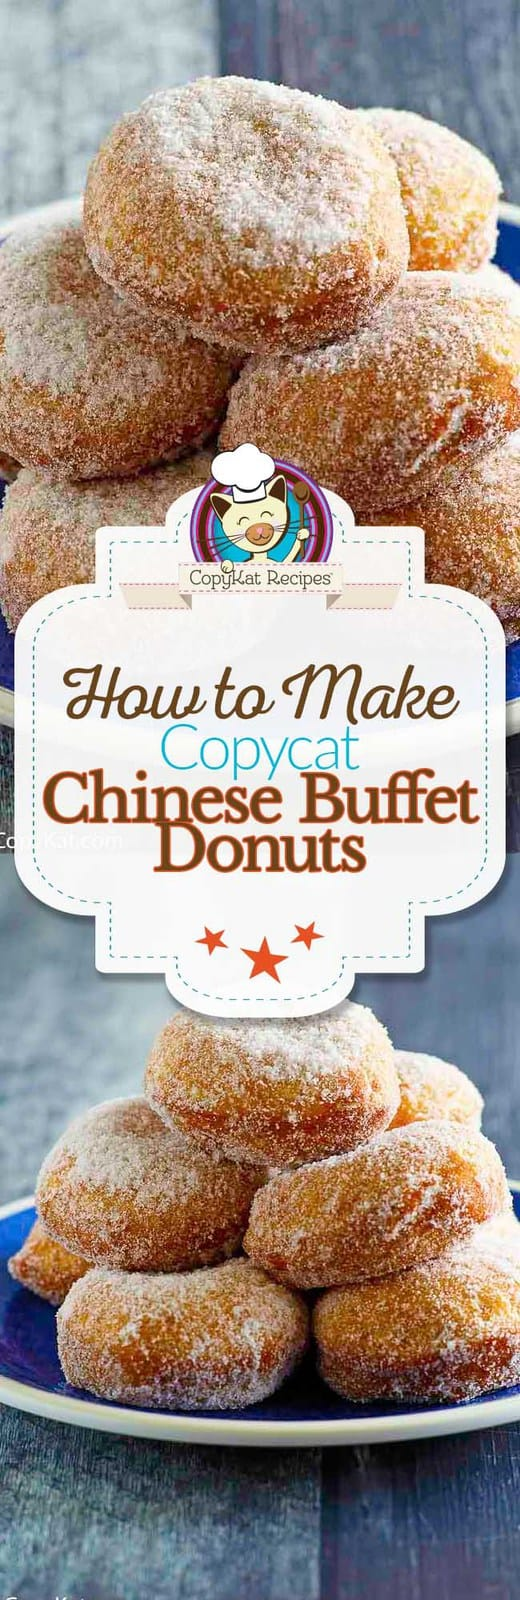 You can recreate Chinese Buffet Style Donuts with this copycat recipe.  These donuts are perfect for dessert and they have just three ingredients.  #3ingredients #threeingredients #donuts #chinese #dessert